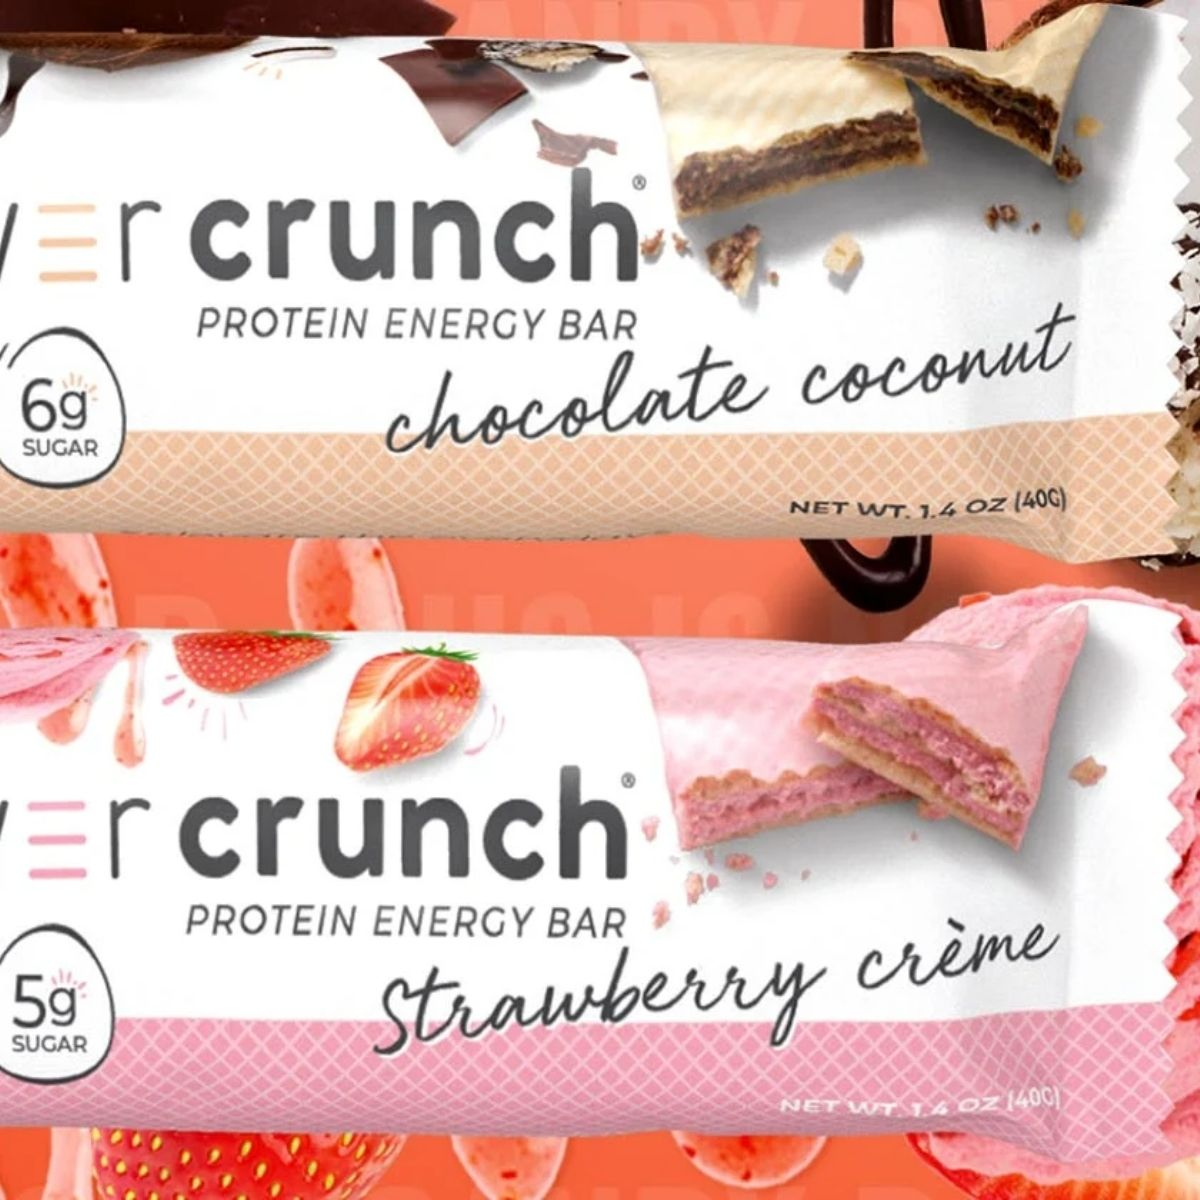 PowerCrunch Bar Announces 4 New Flavors Coming Soon